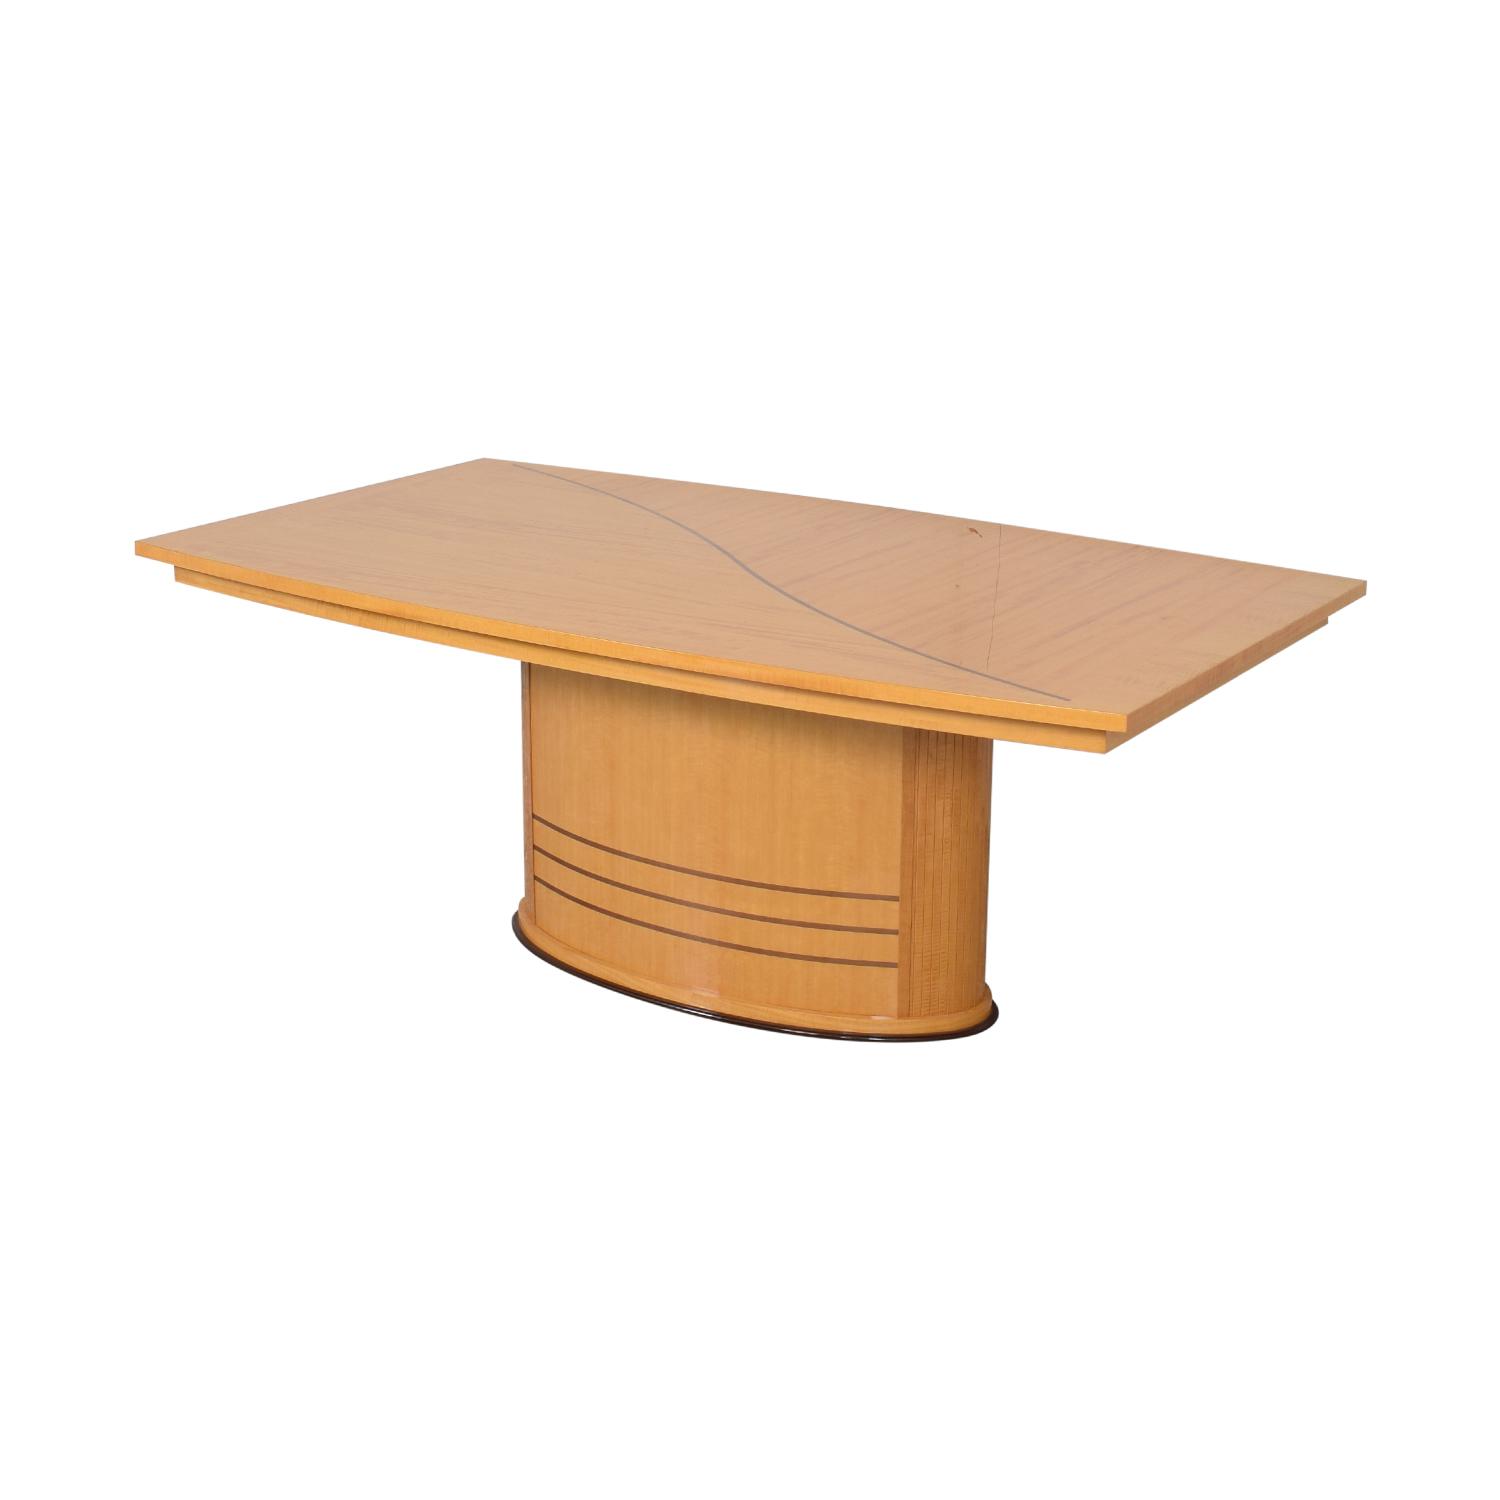 Ello Furniture Inlay Table / Tables